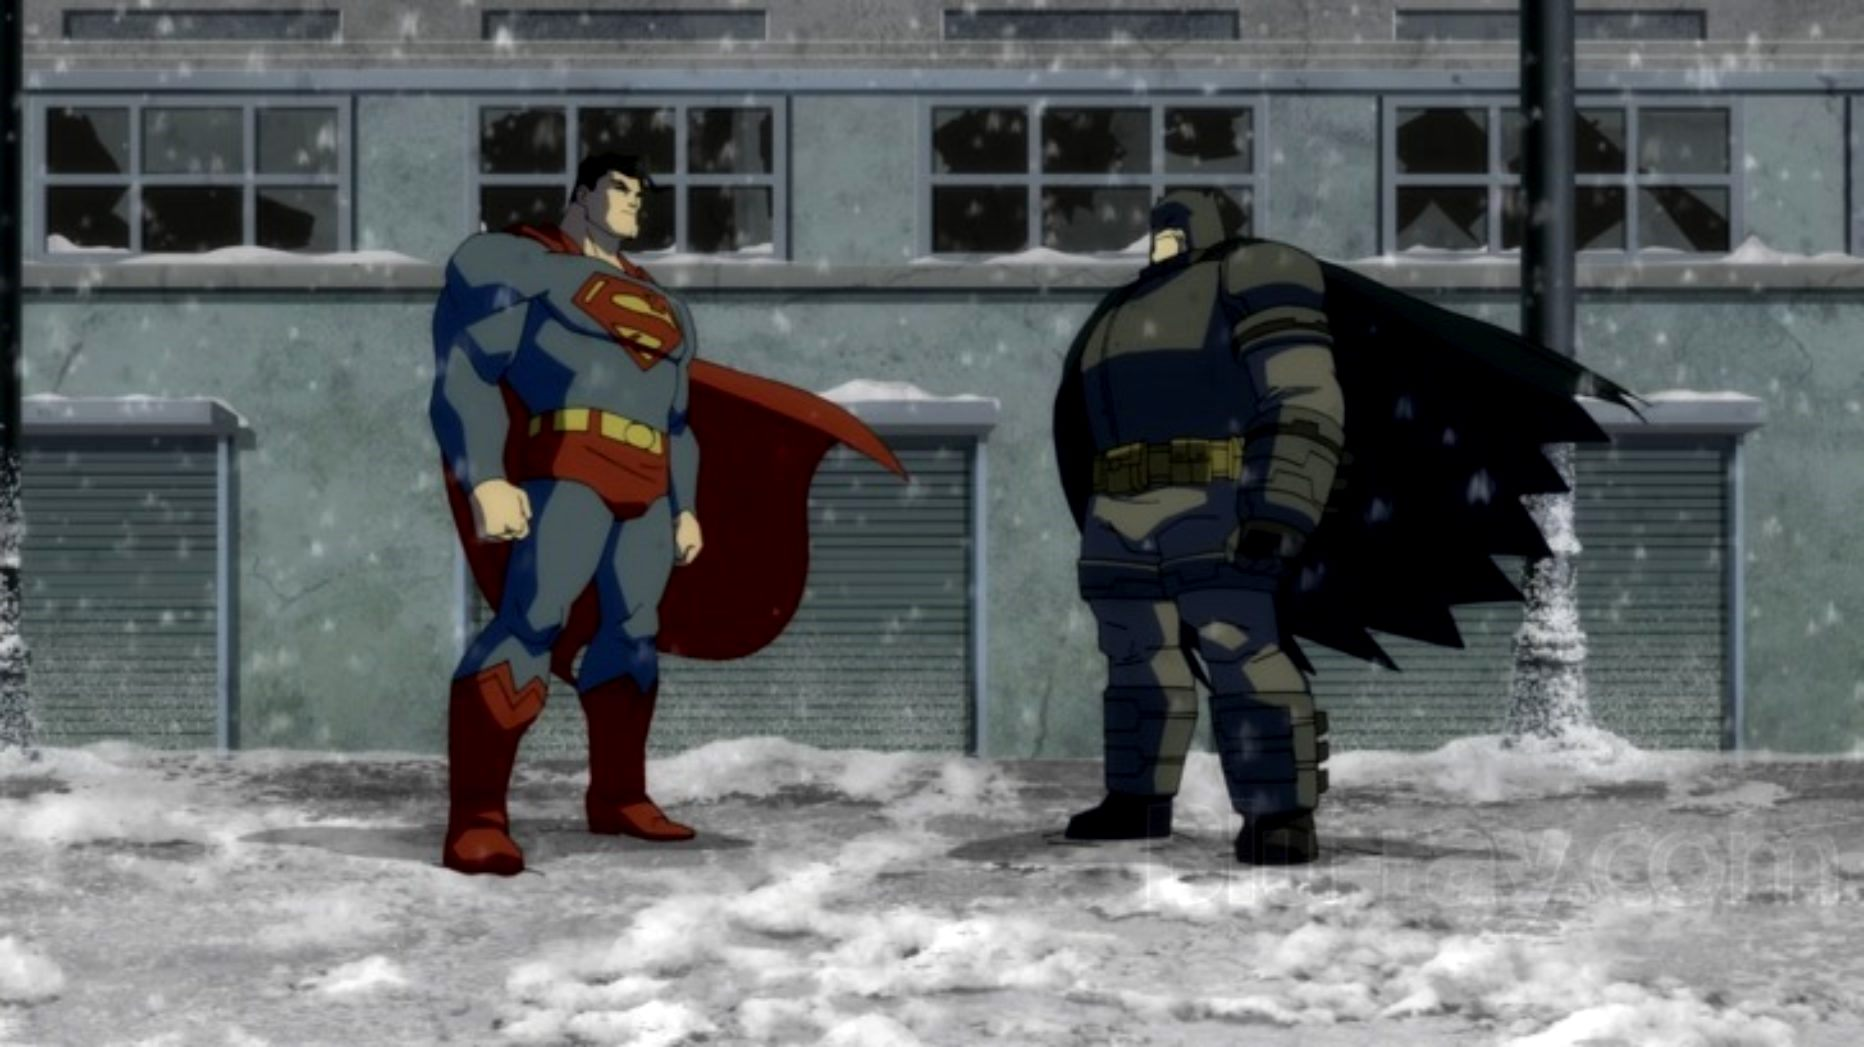 Showdown between Superman and Batman in Batman The Dark Knight Returns Part II (2013)